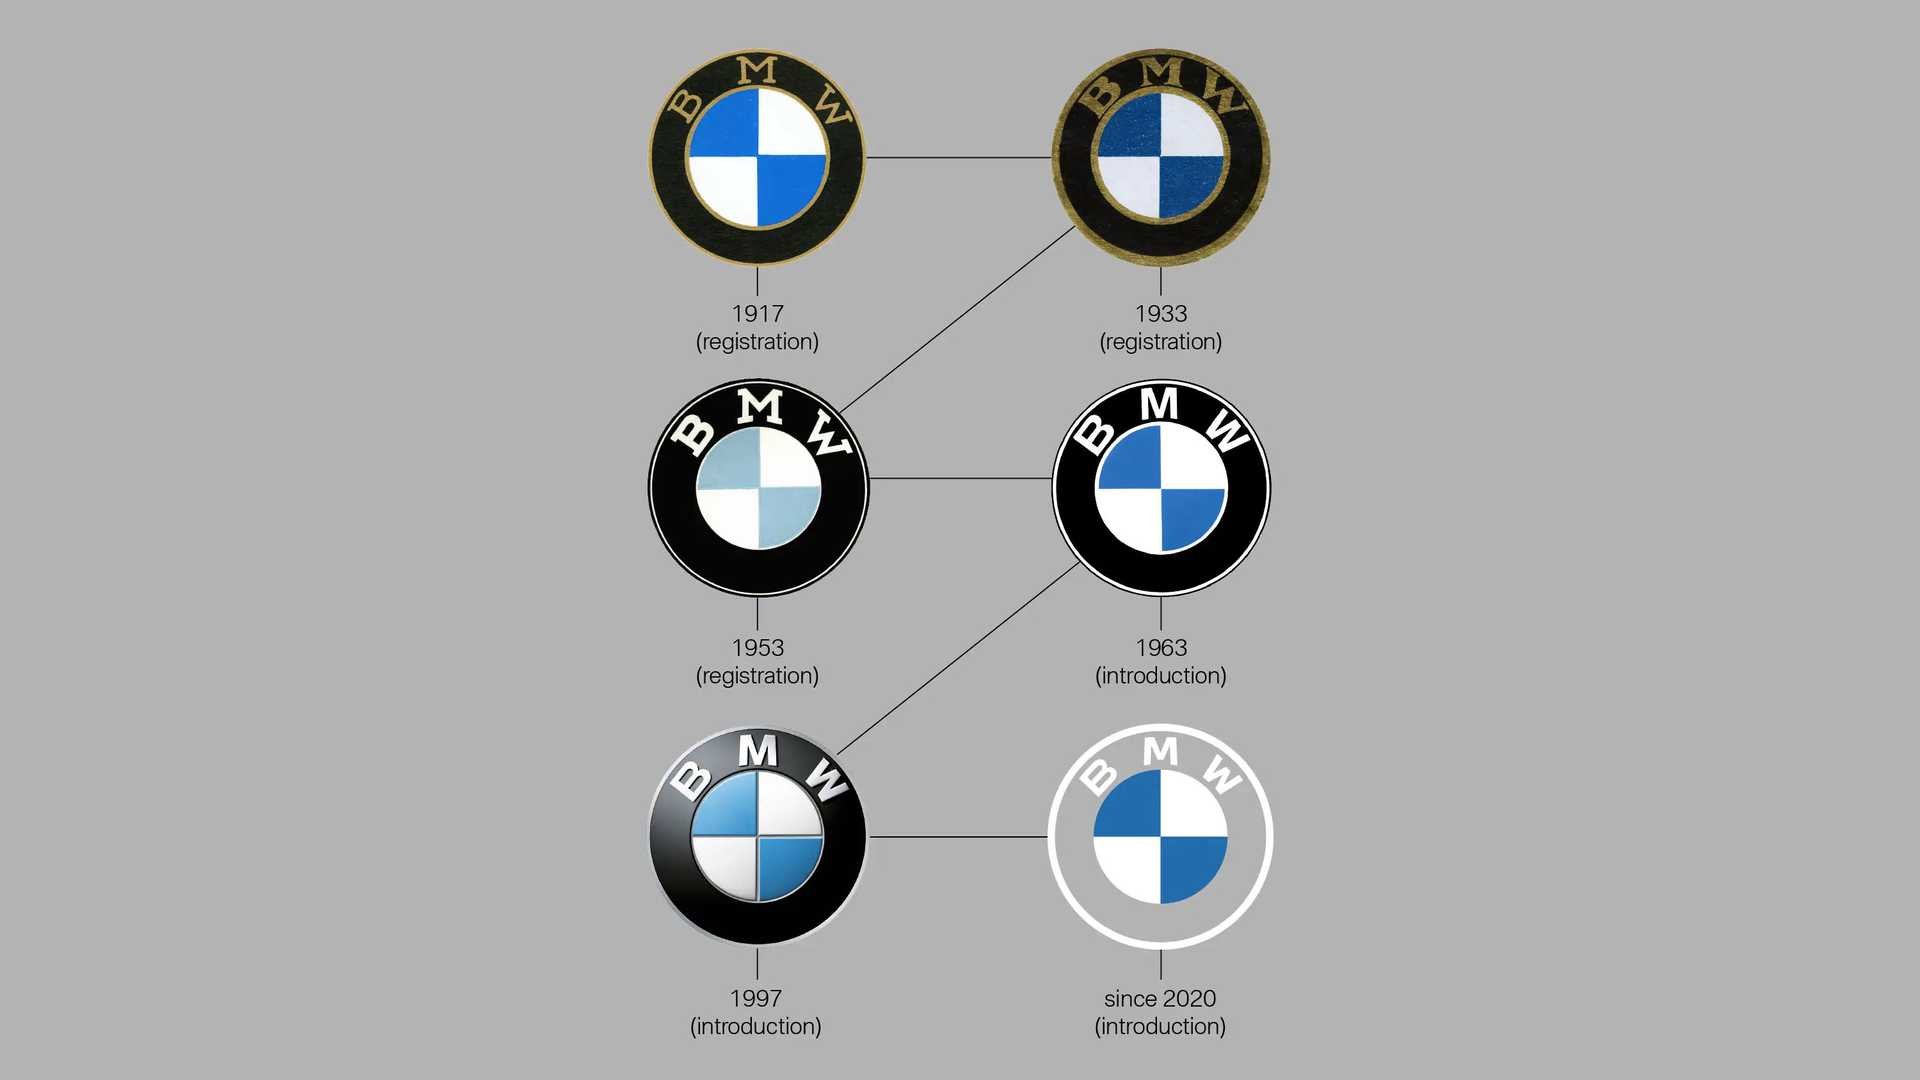 Here S How The Bmw Logo Evolved Through The Years